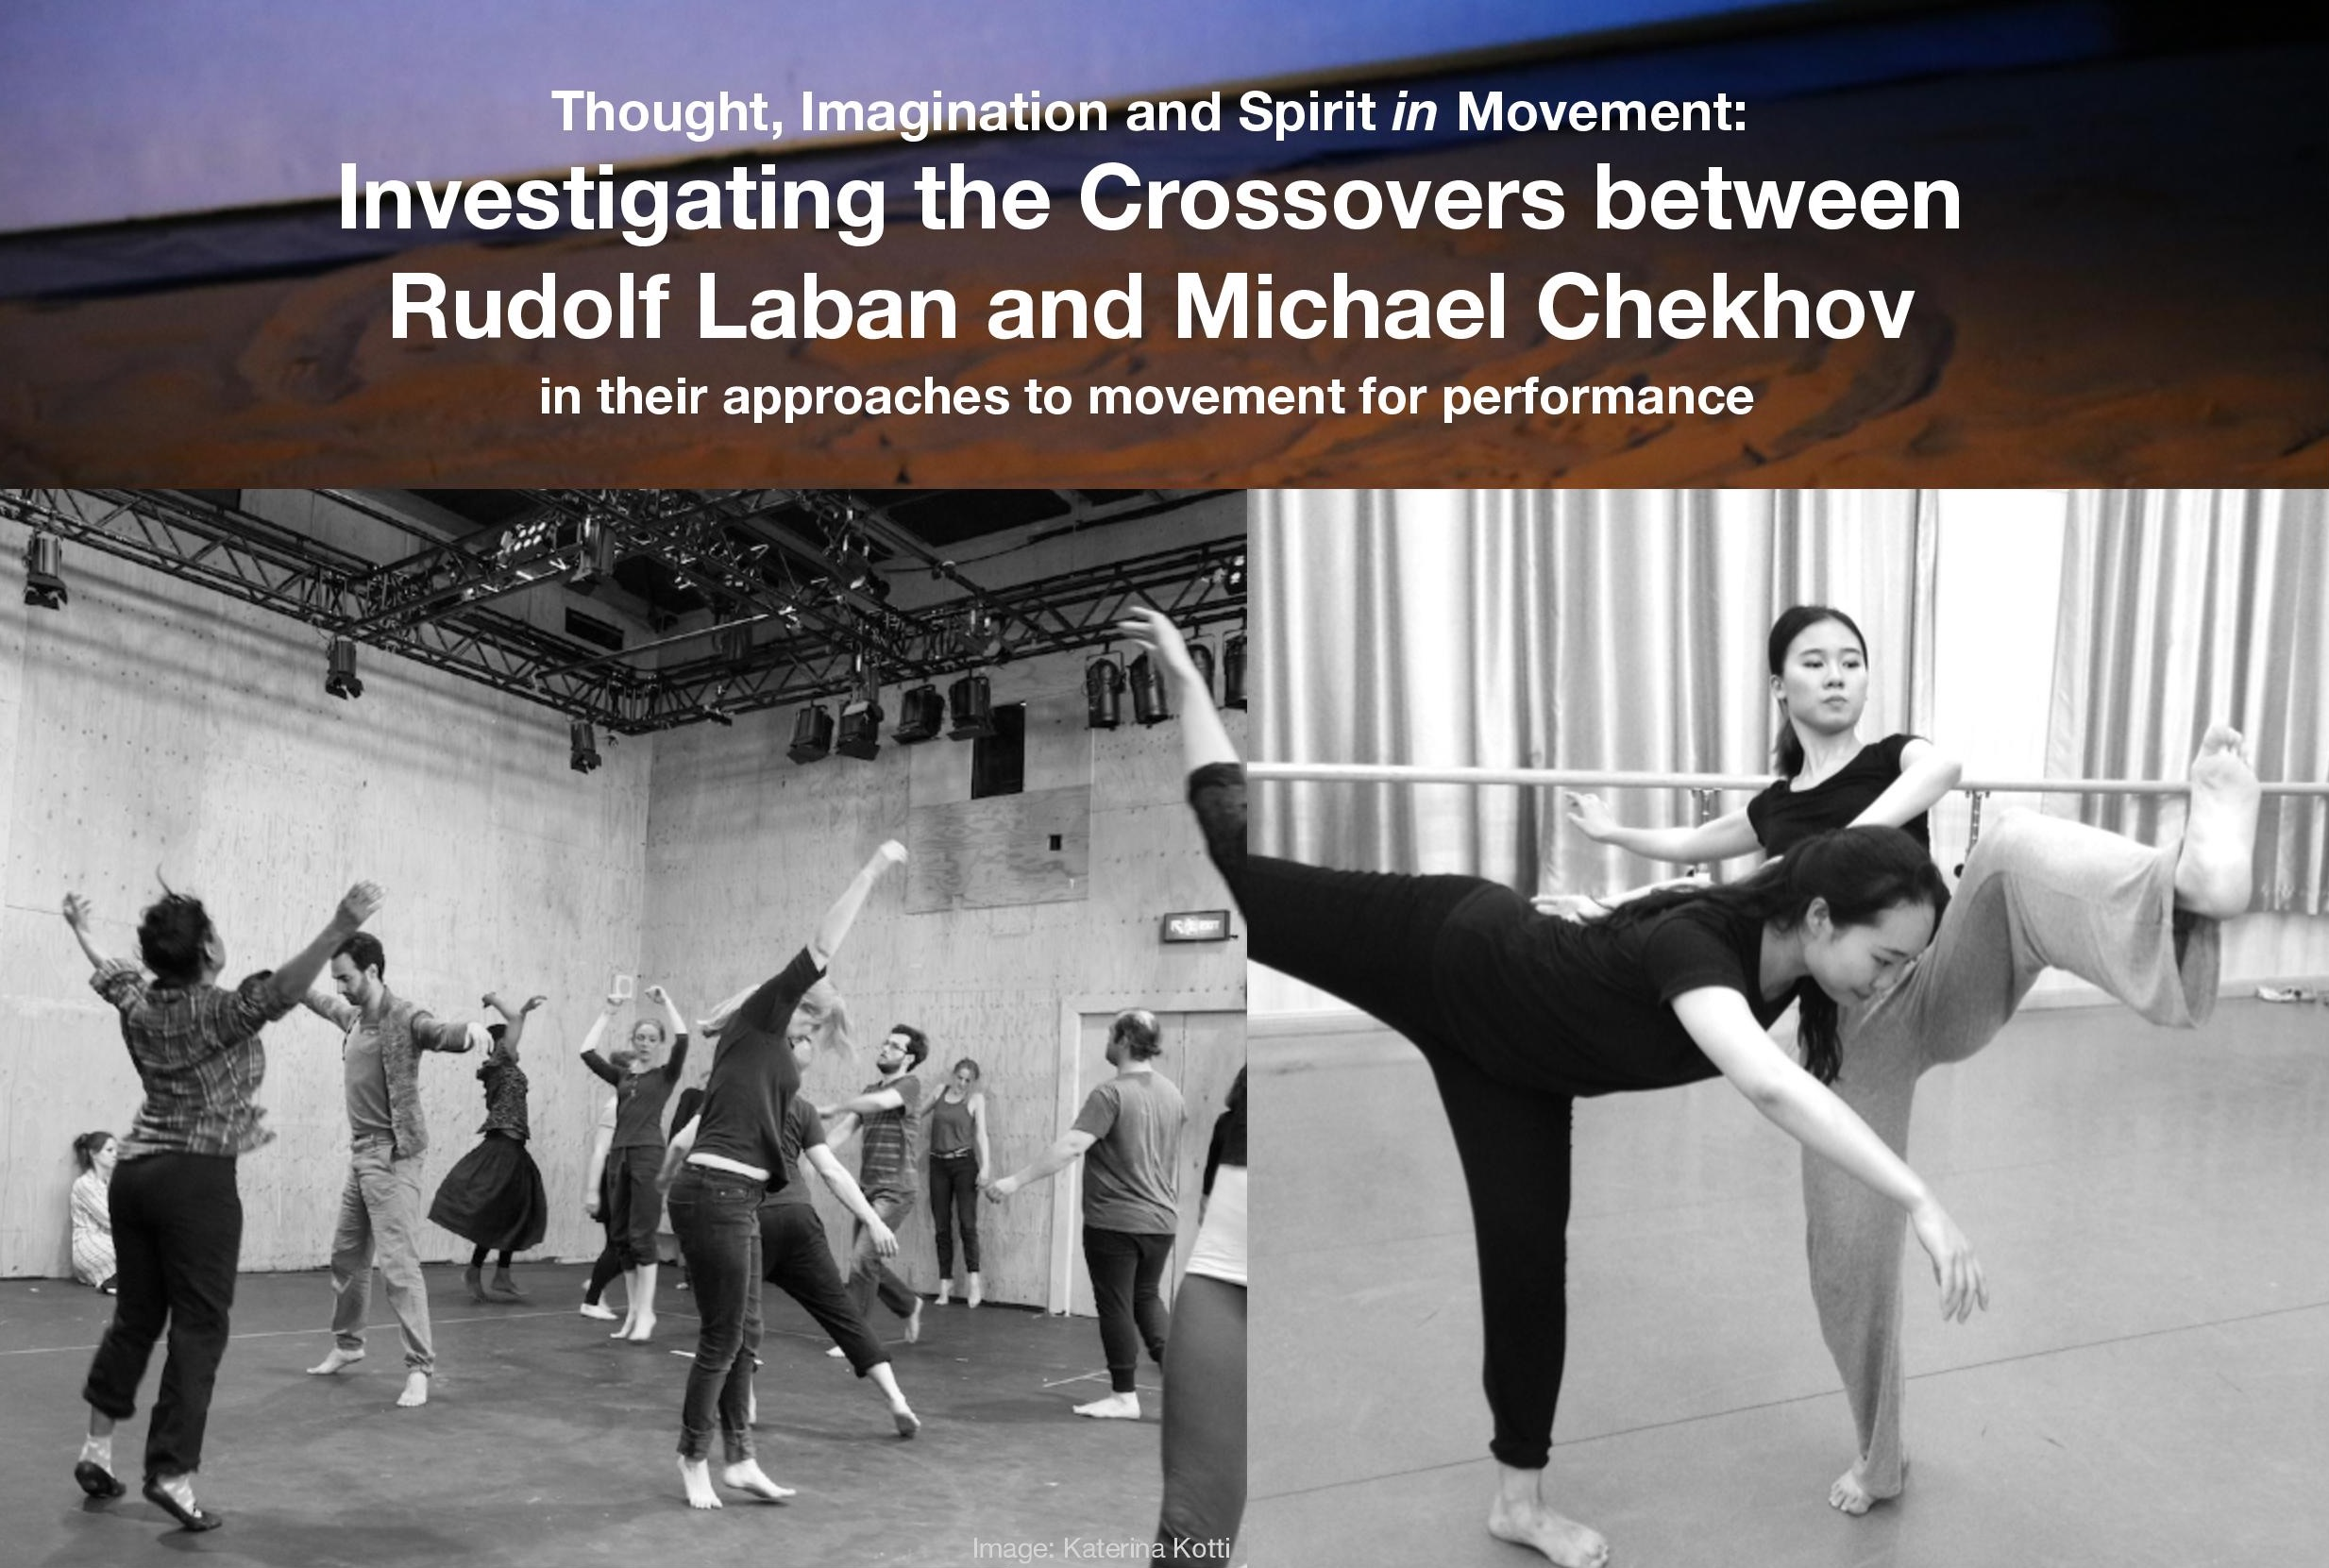 - 'Thought, Imagination and Spirit in Movement: Investigating the Crossovers between Rudolf Laban and Michael Chekhov in their approaches to movement for performance'. Friday 5 January 2018